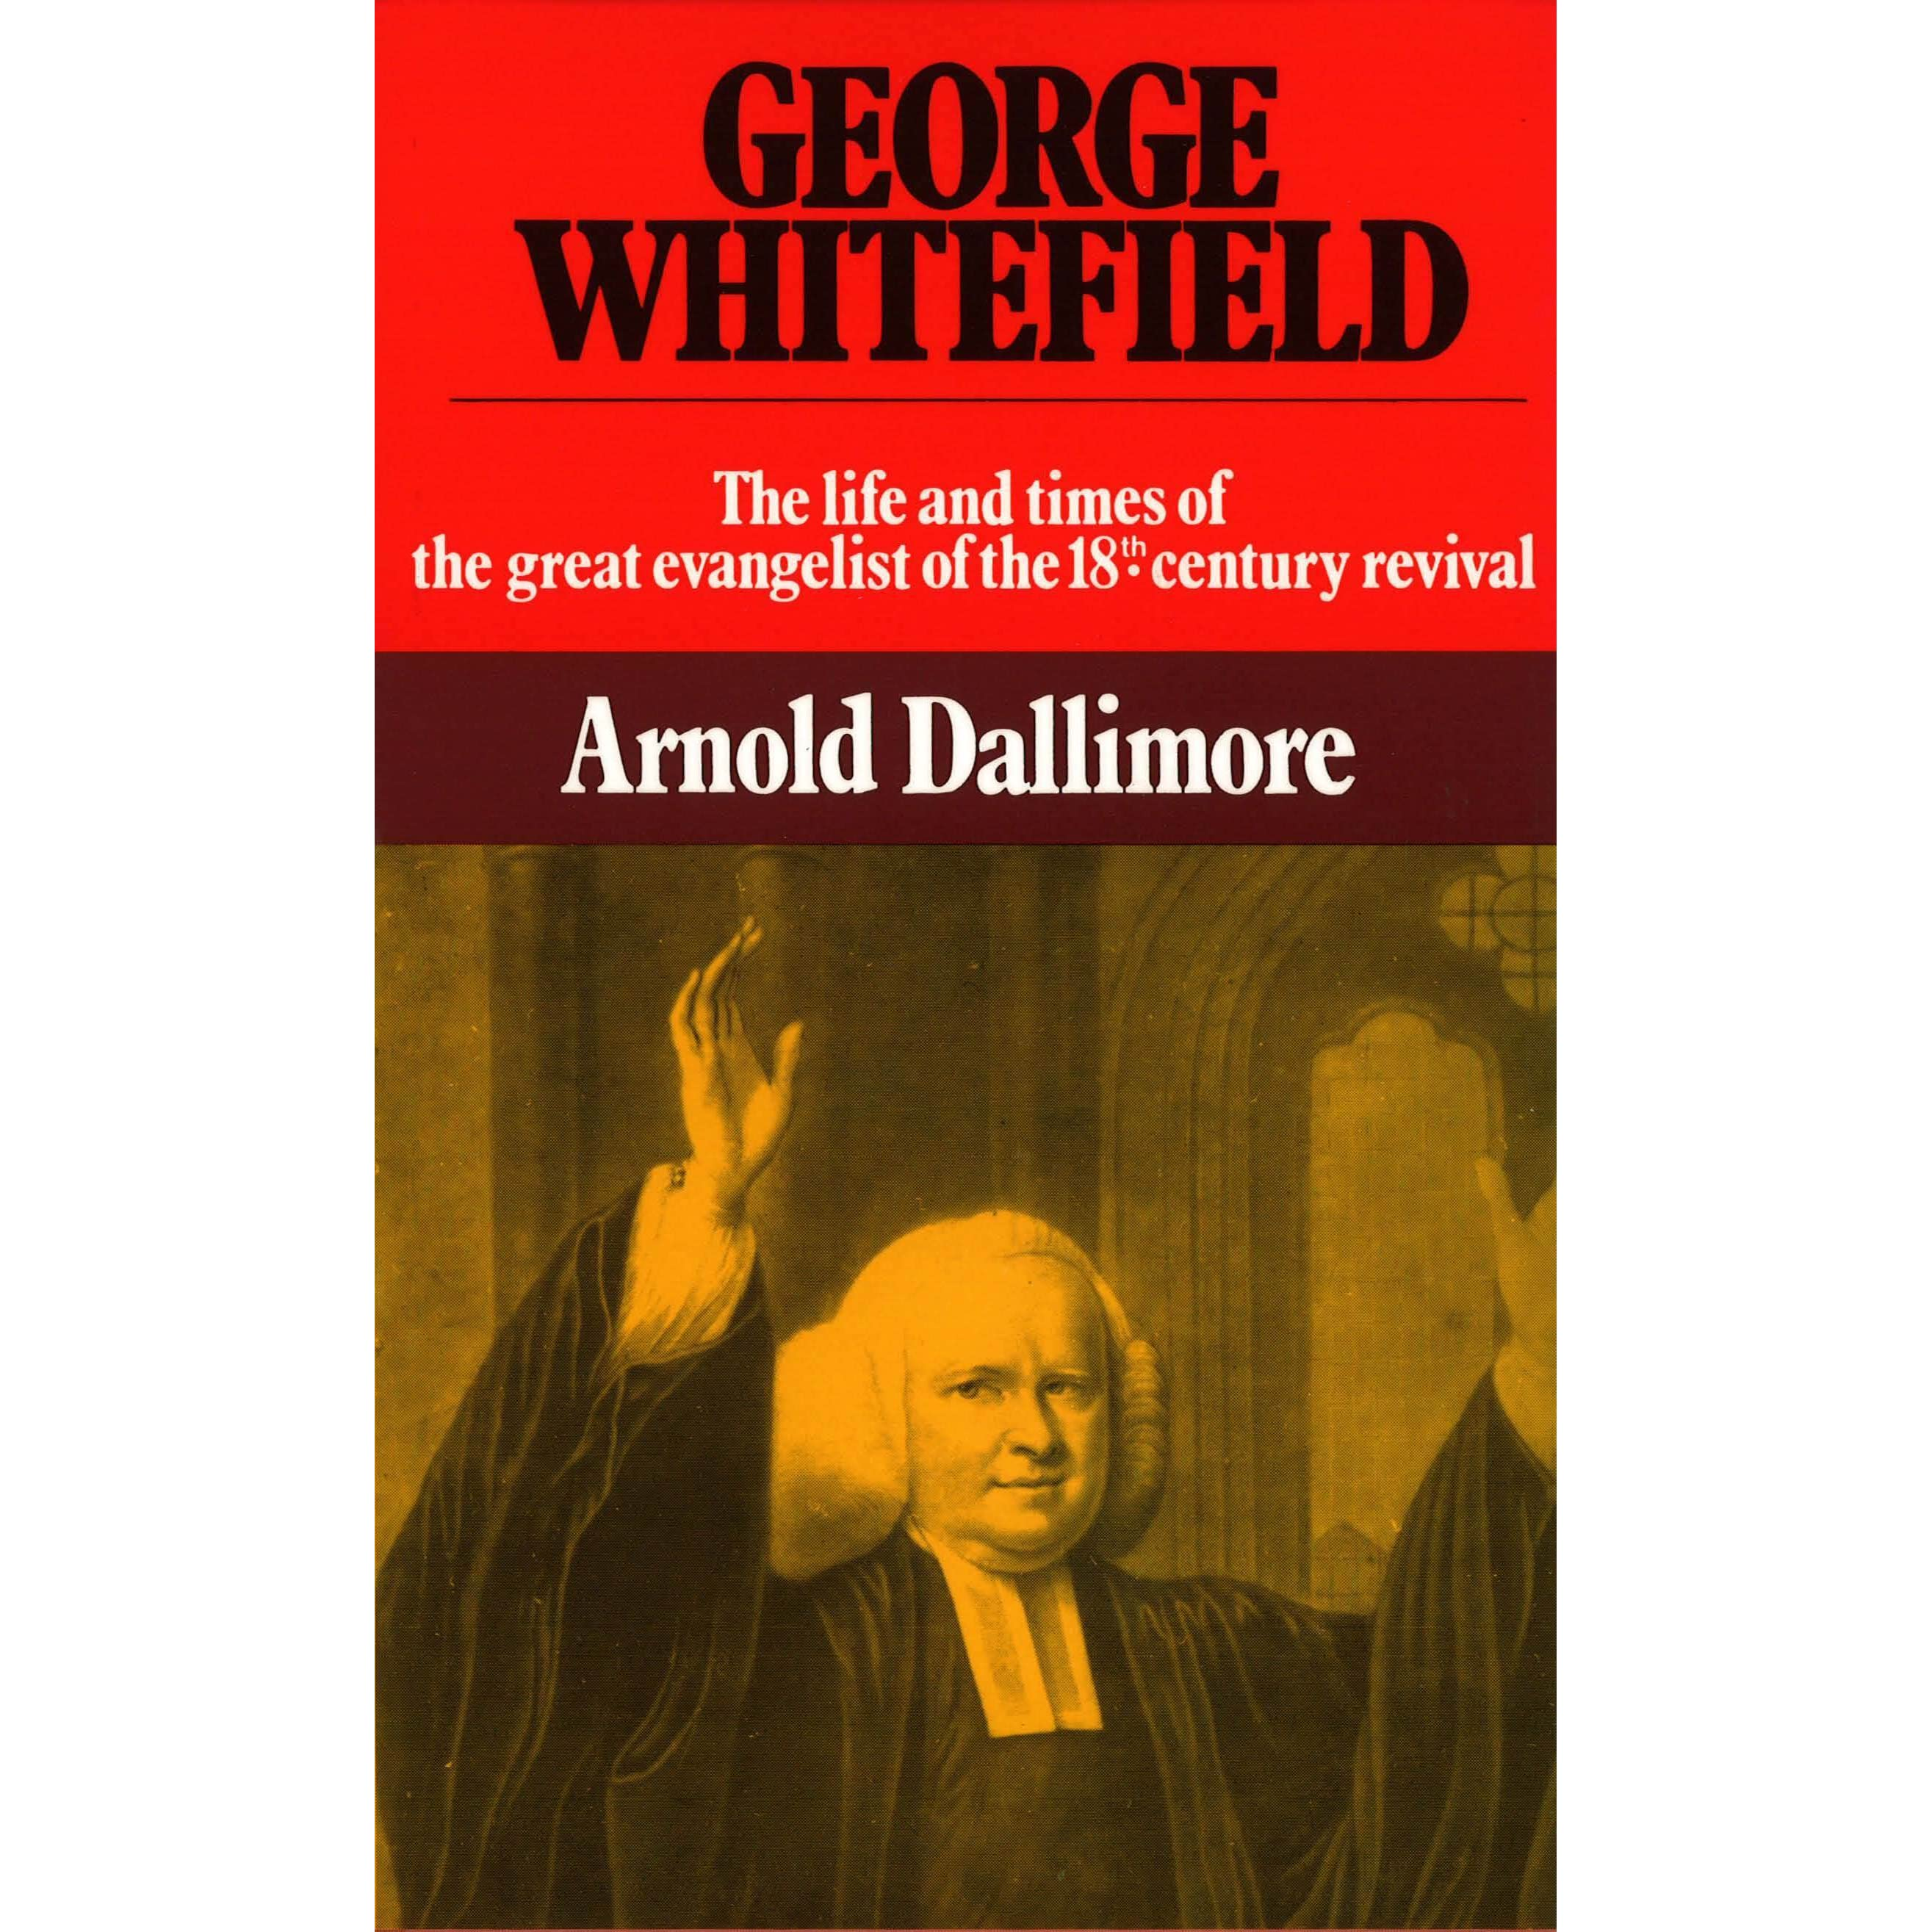 the life and times of george whitefield Tuesday 1 may – friday 20 july 2018 the new room will be hosting a travelling exhibition on the life and times of george whitefield, one of the most influential preachers of the eighteenth century.